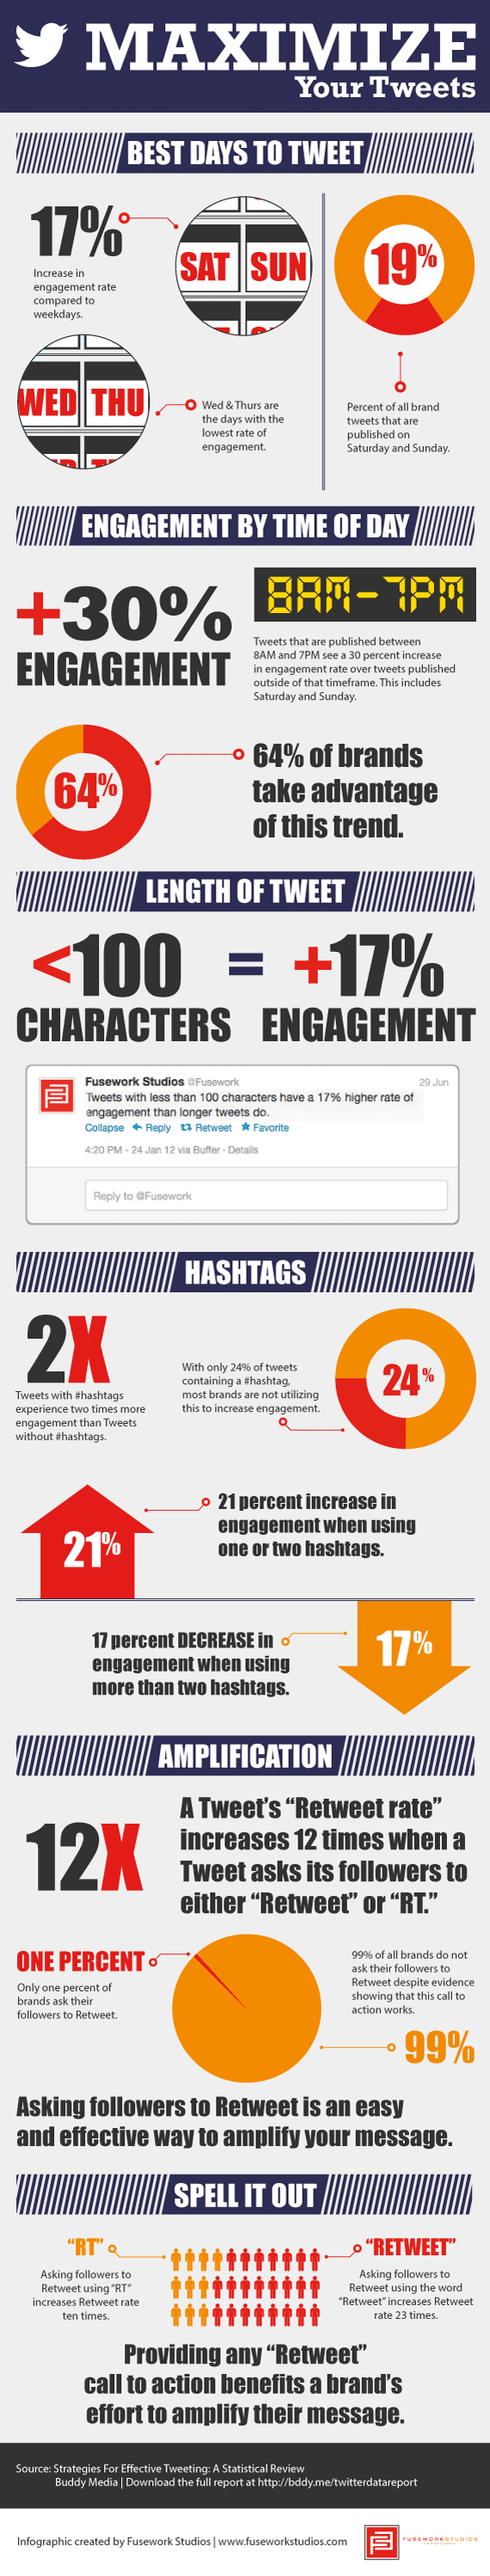 Fresh Data To Maximize Your Impact On Twitter [Infographic]